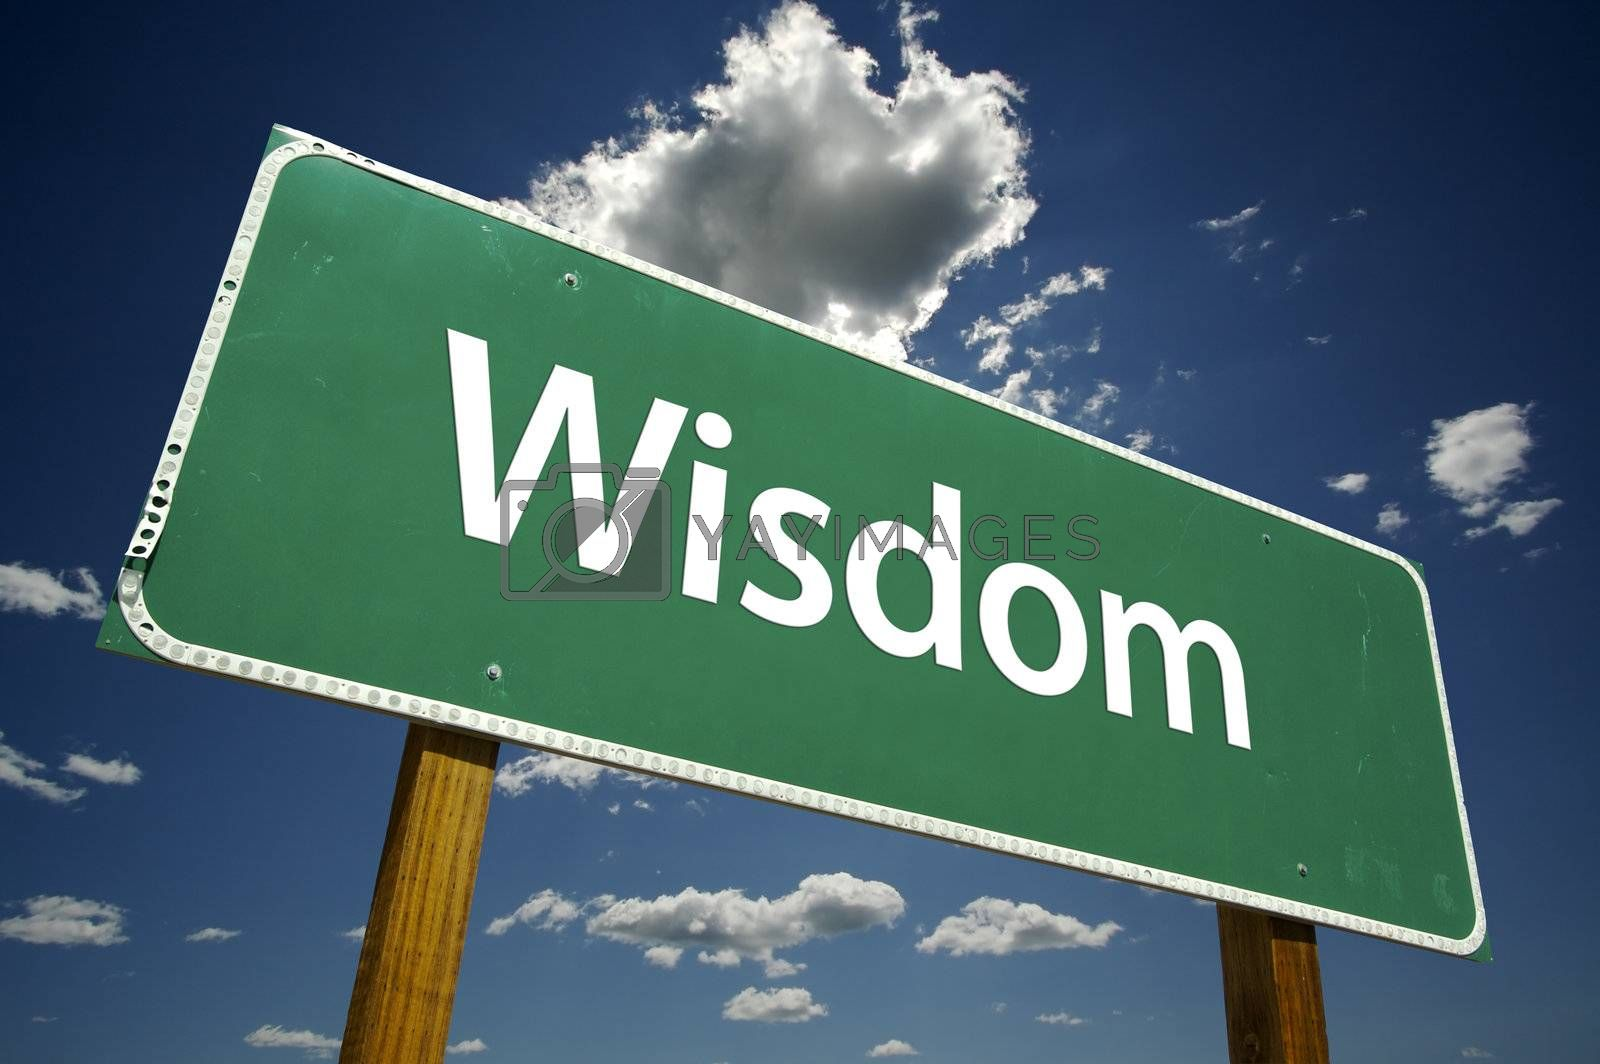 Wisdom Road Sign by Andy Dean Photography